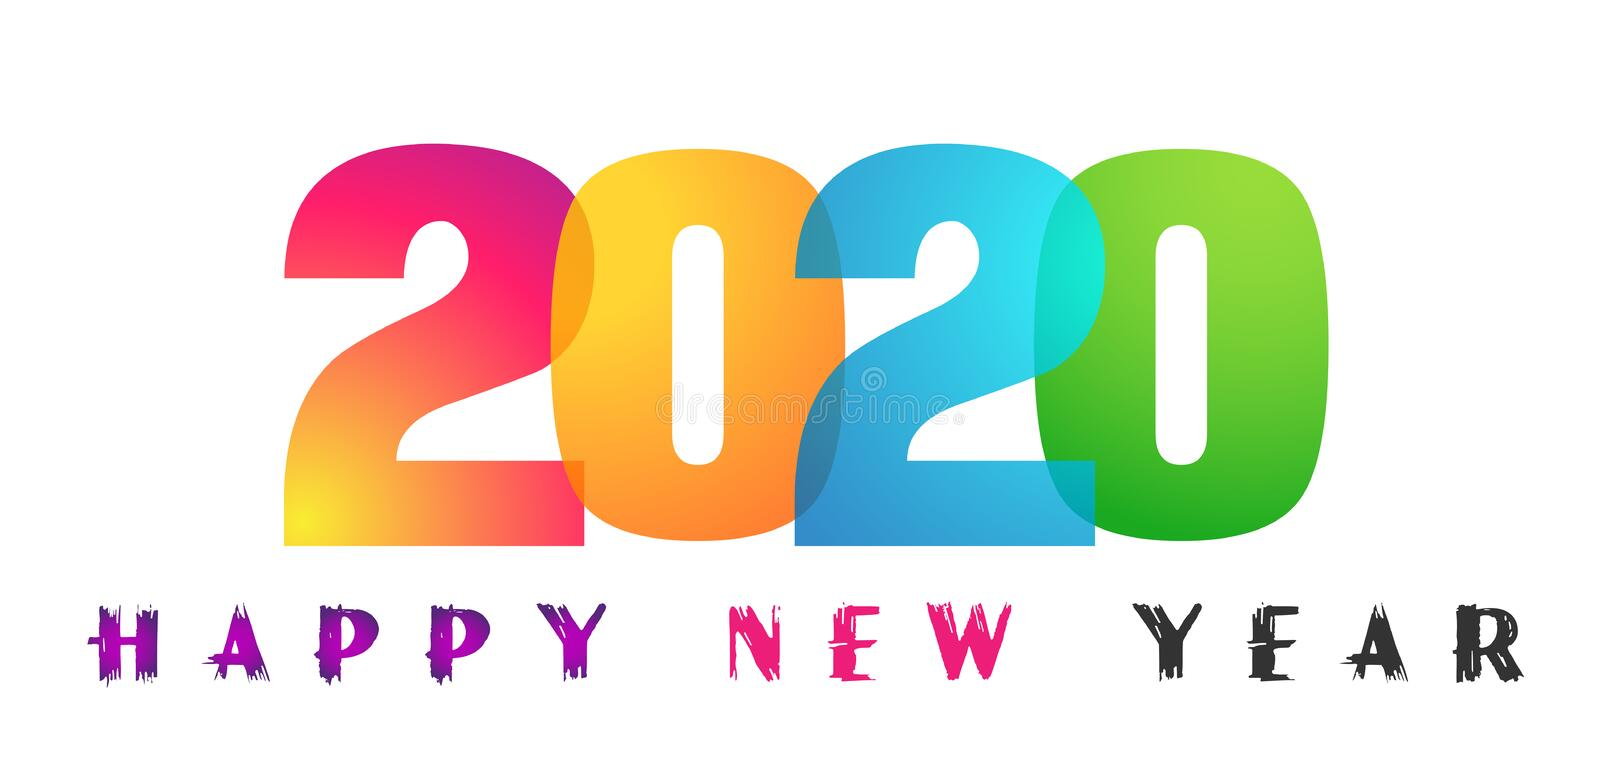 Happy New Year 2020 card and colorful greeting text design in colored on white background vector illustration